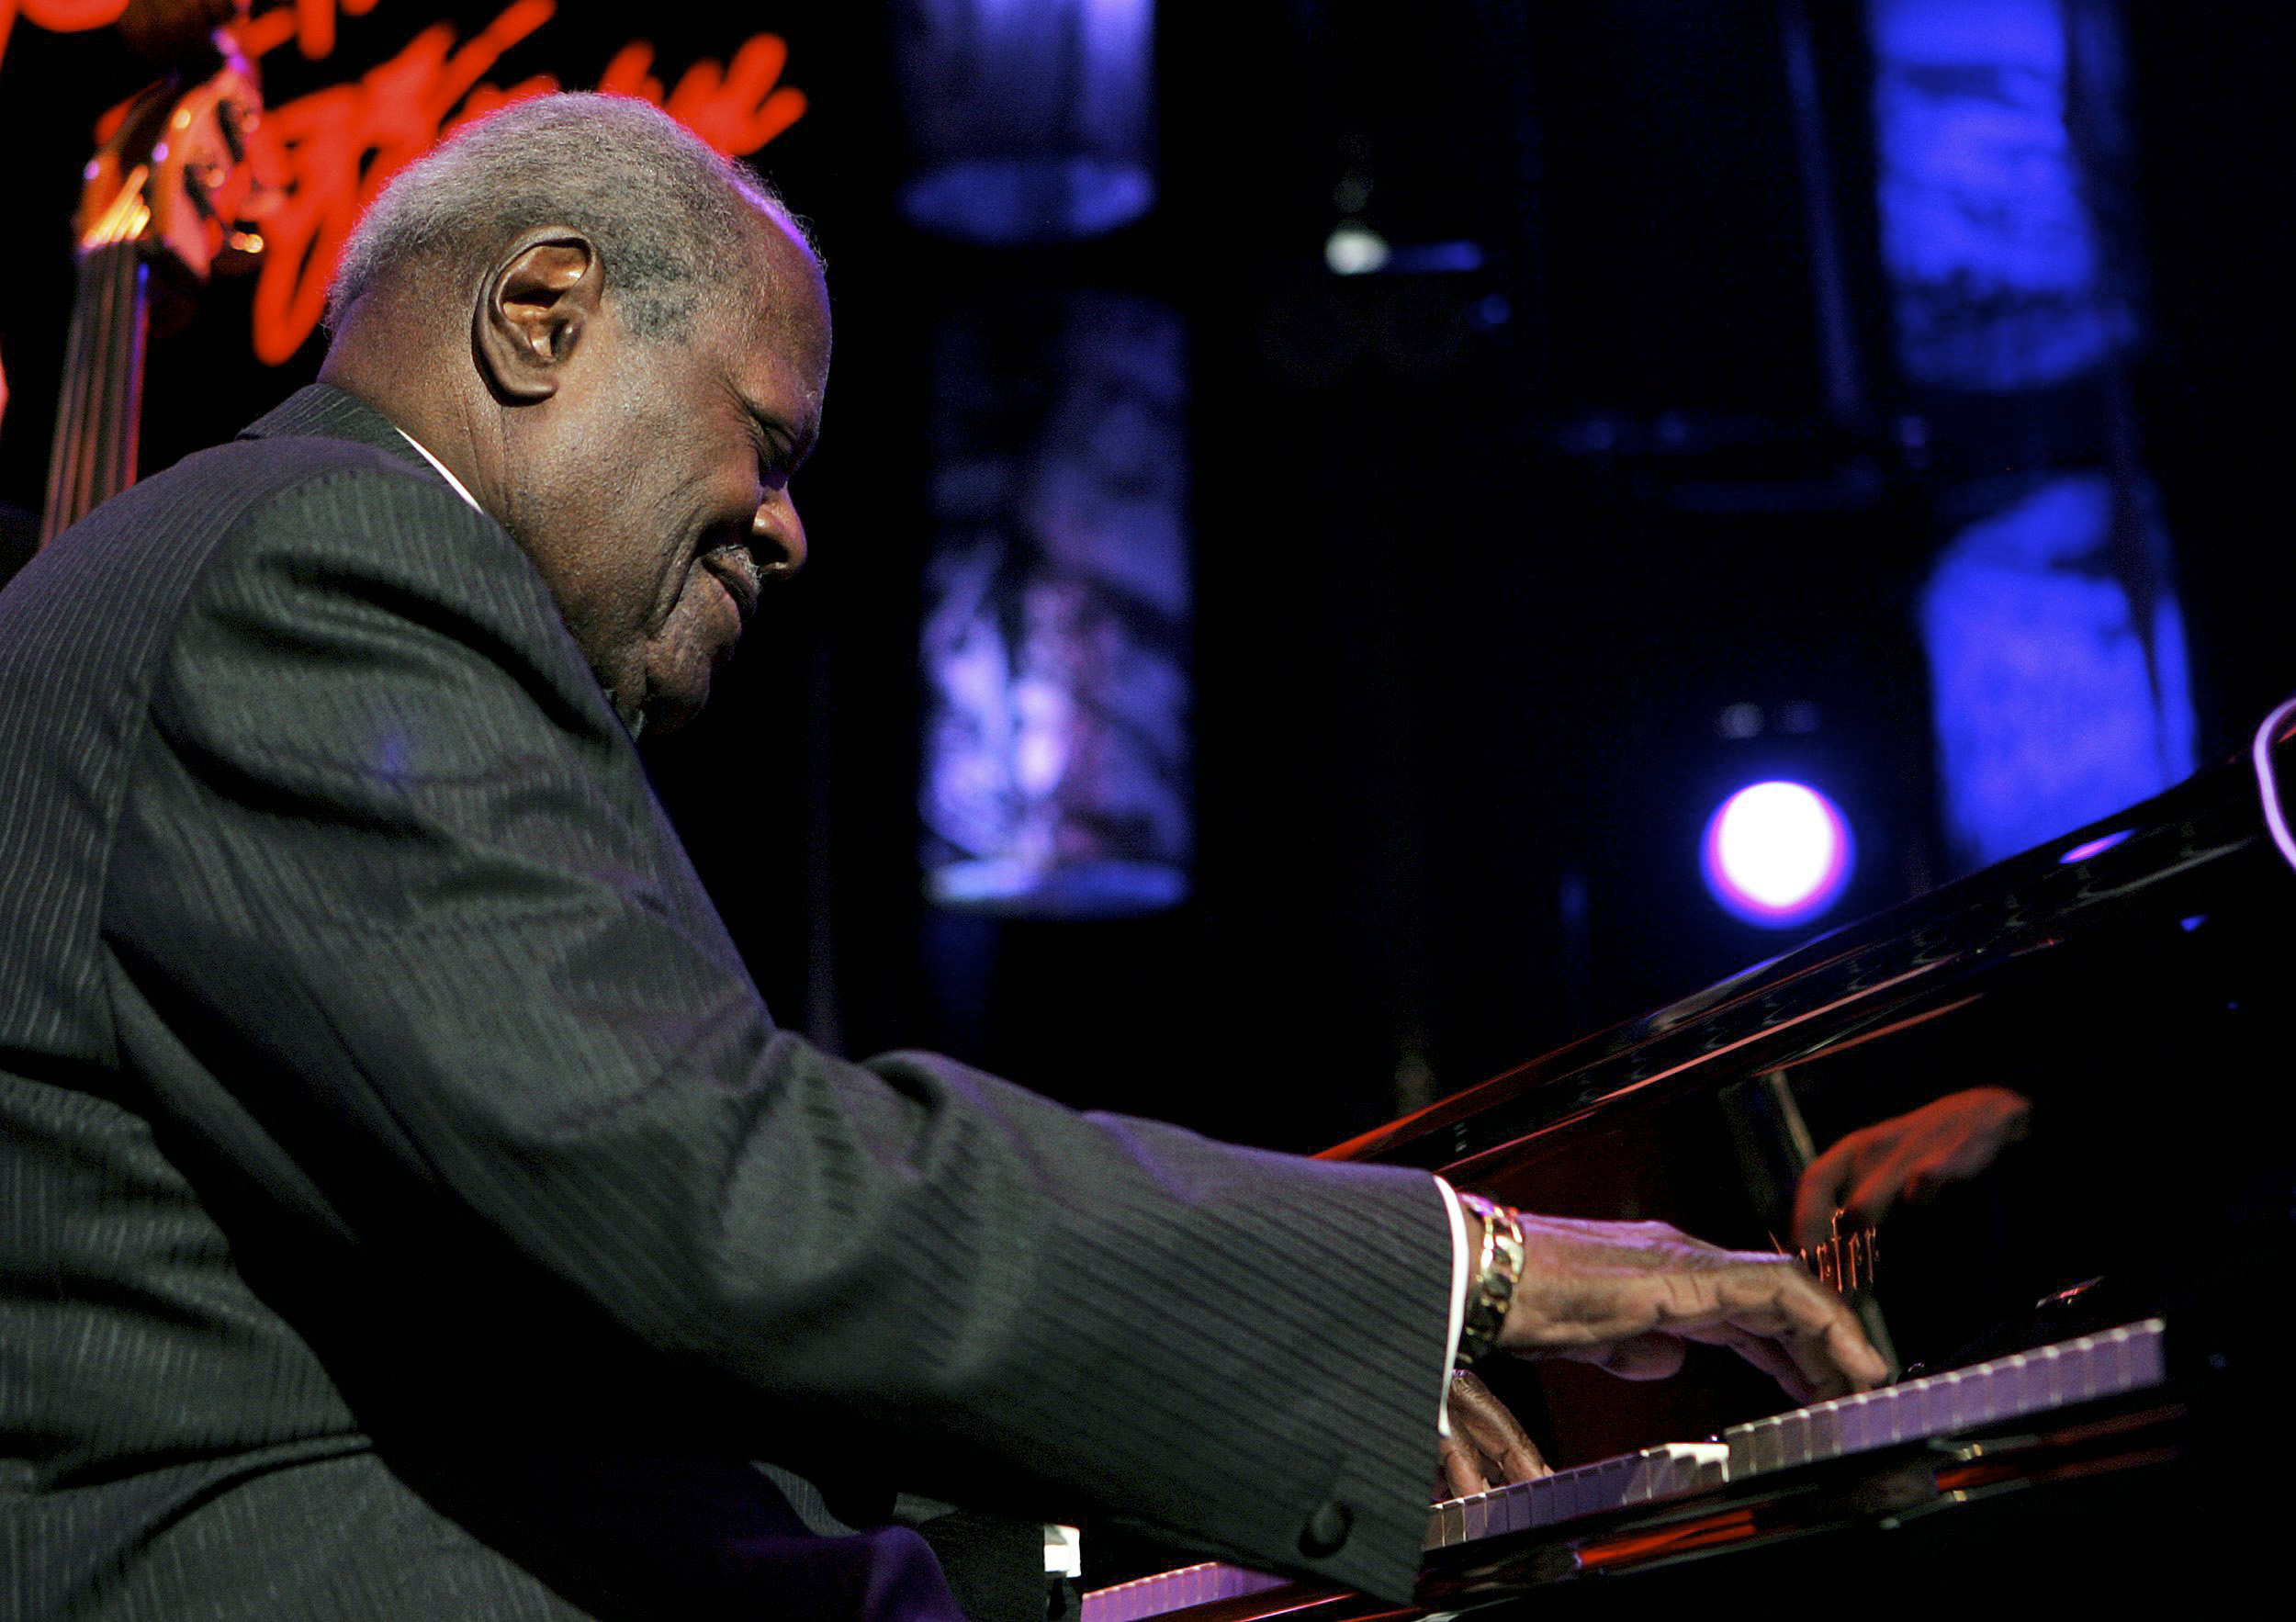 Canadian jazz legend Oscar Peterson performs on the Stravinski hall stage during the 39th Montreux Jazz Festival in Montreux, Switzerland on July 16, ...